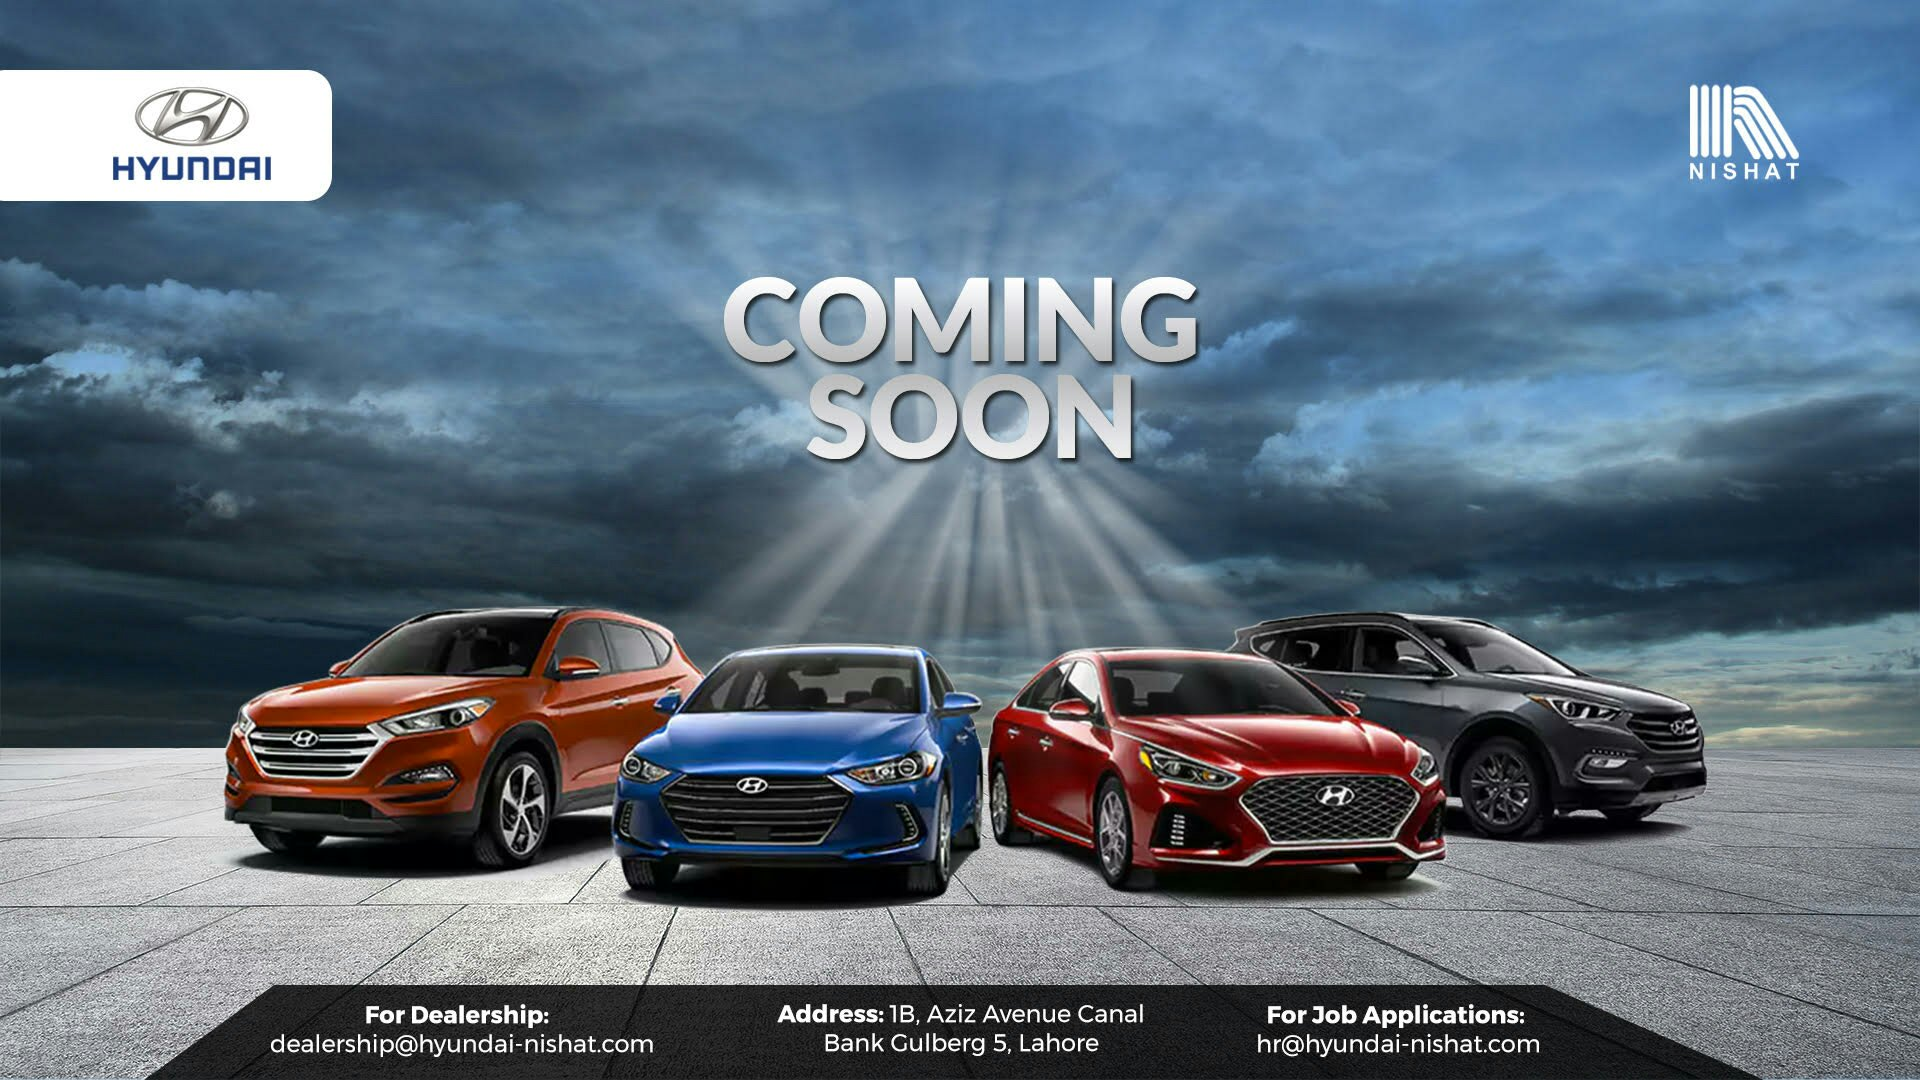 Hyundai-Nishat Website Hints a Range of Upcoming Vehicles 1